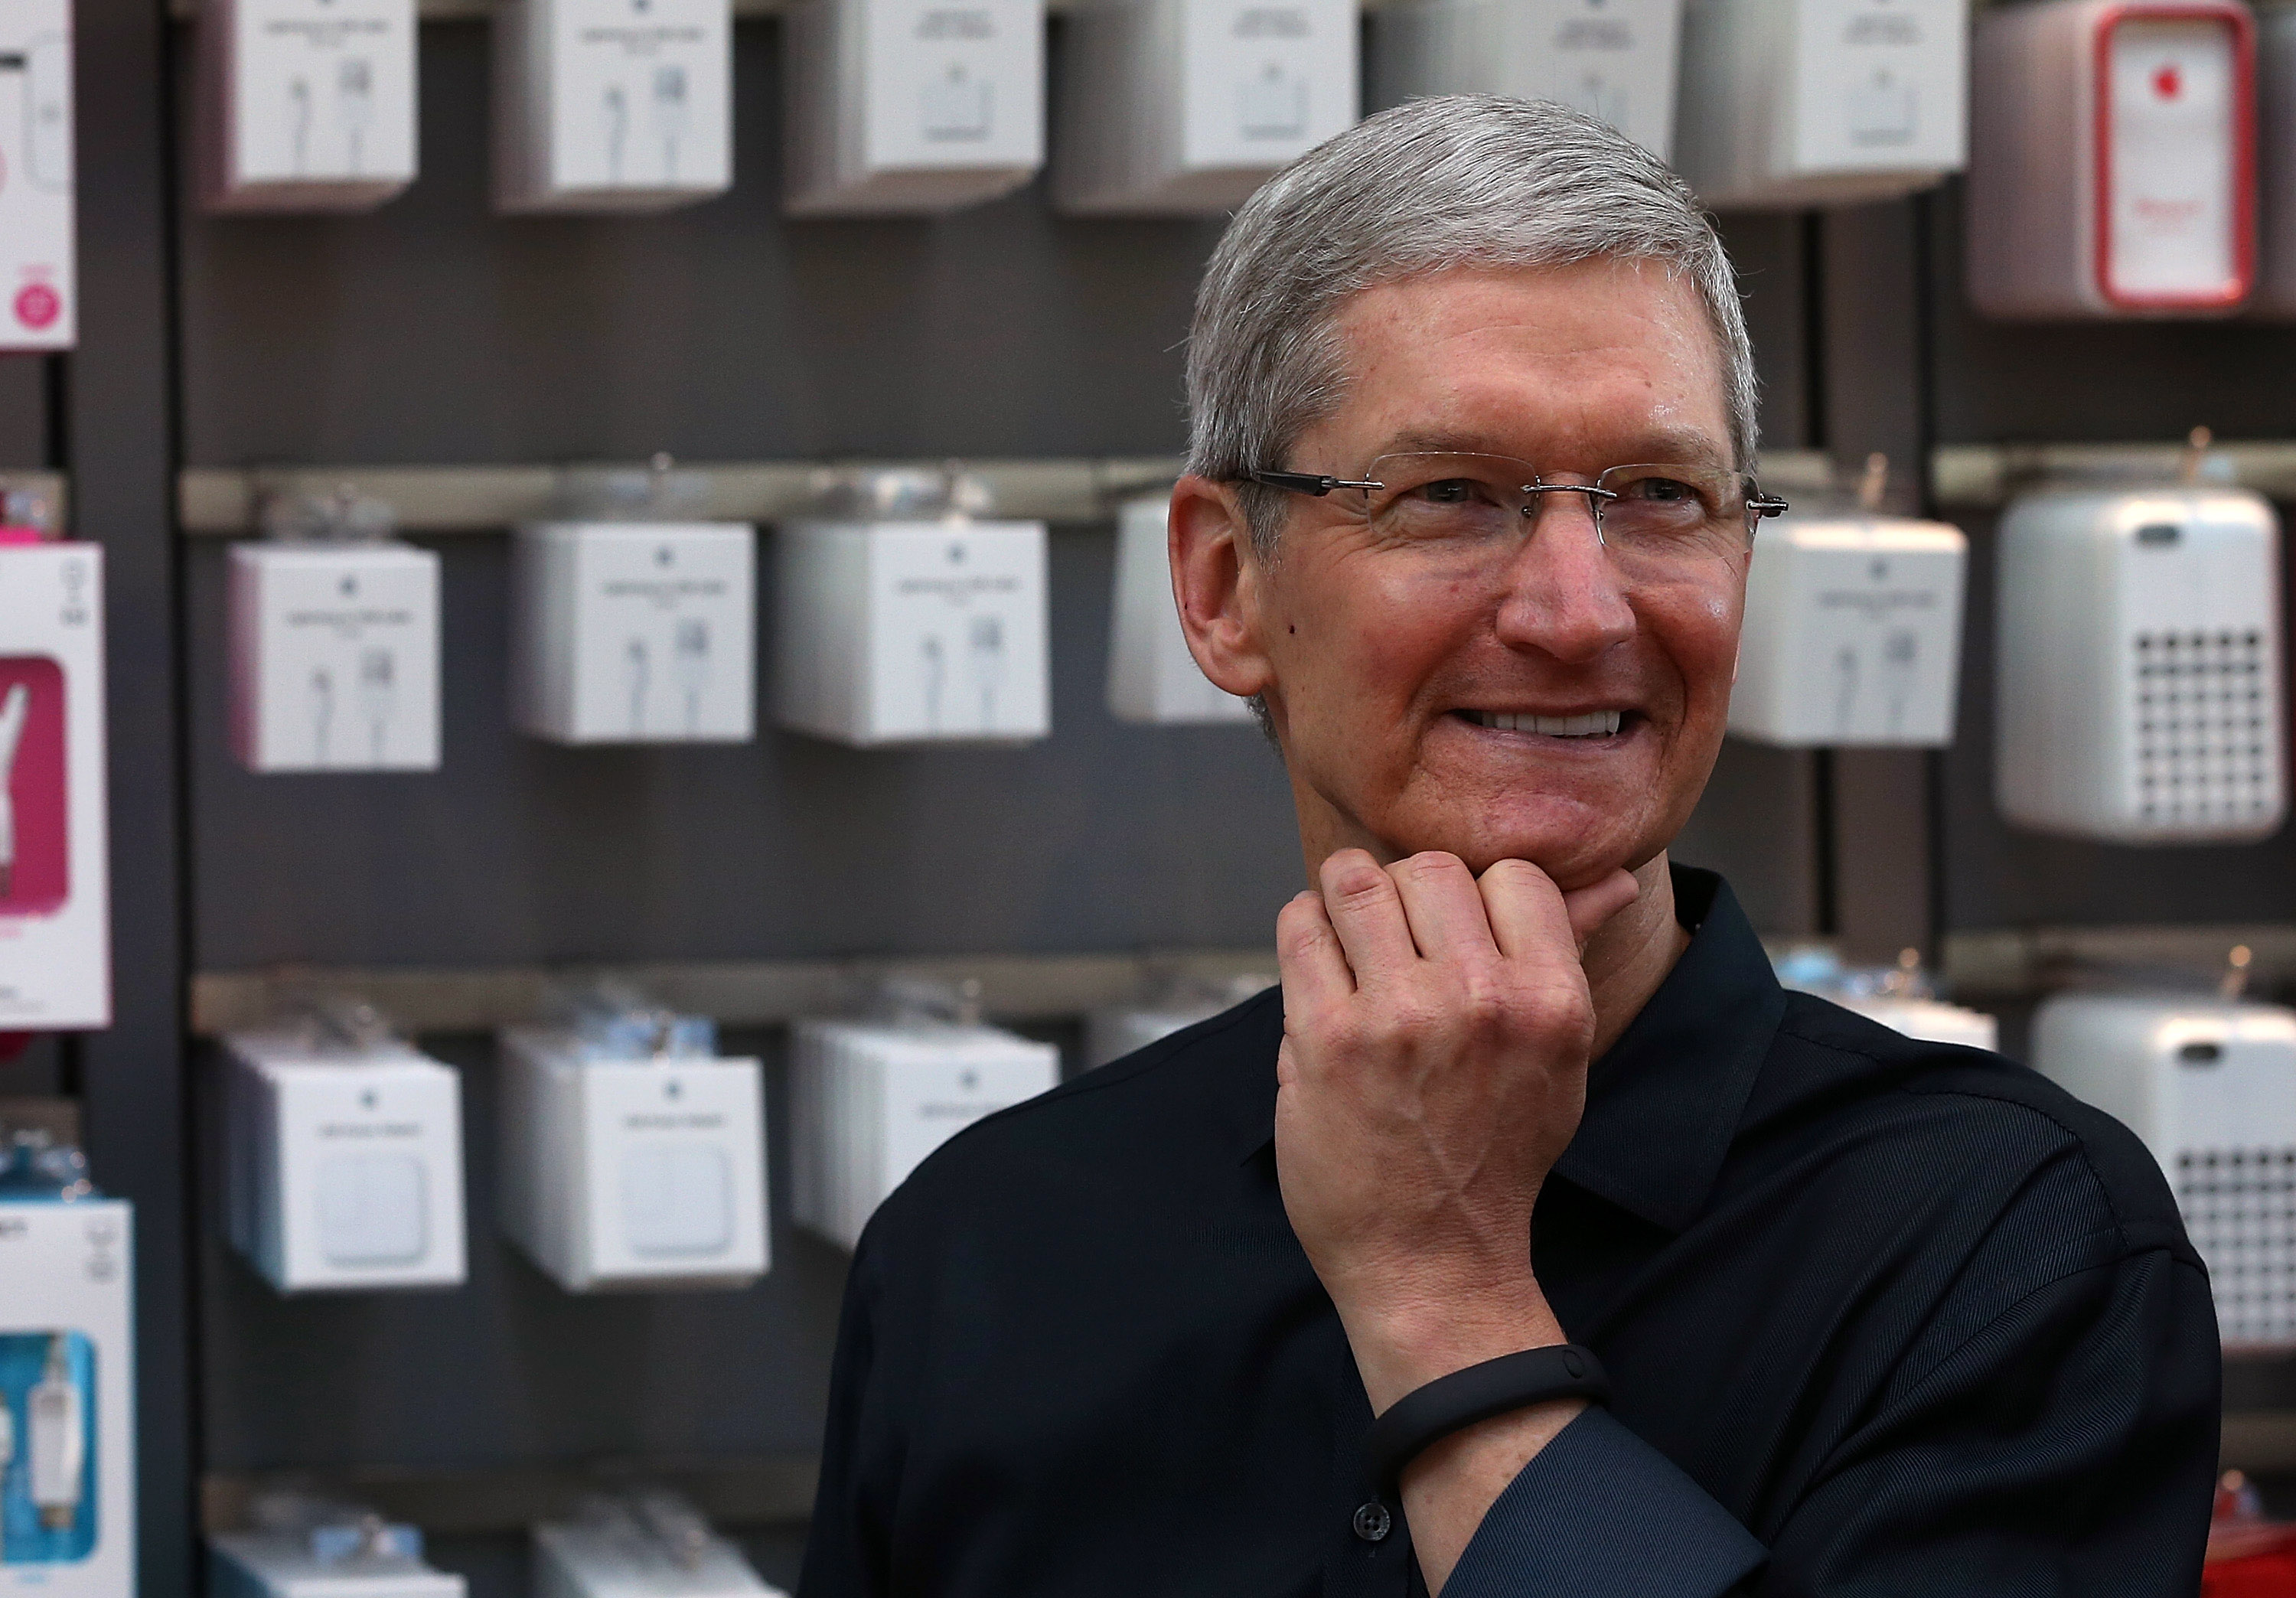 Apple CEO Tim Cook looks on, wearing a Nike Fuelband, before the Apple Store opens to sell the new iPhone on September 20, 2013 in Palo Alto, California. Photo by Justin Sullivan/Getty Images